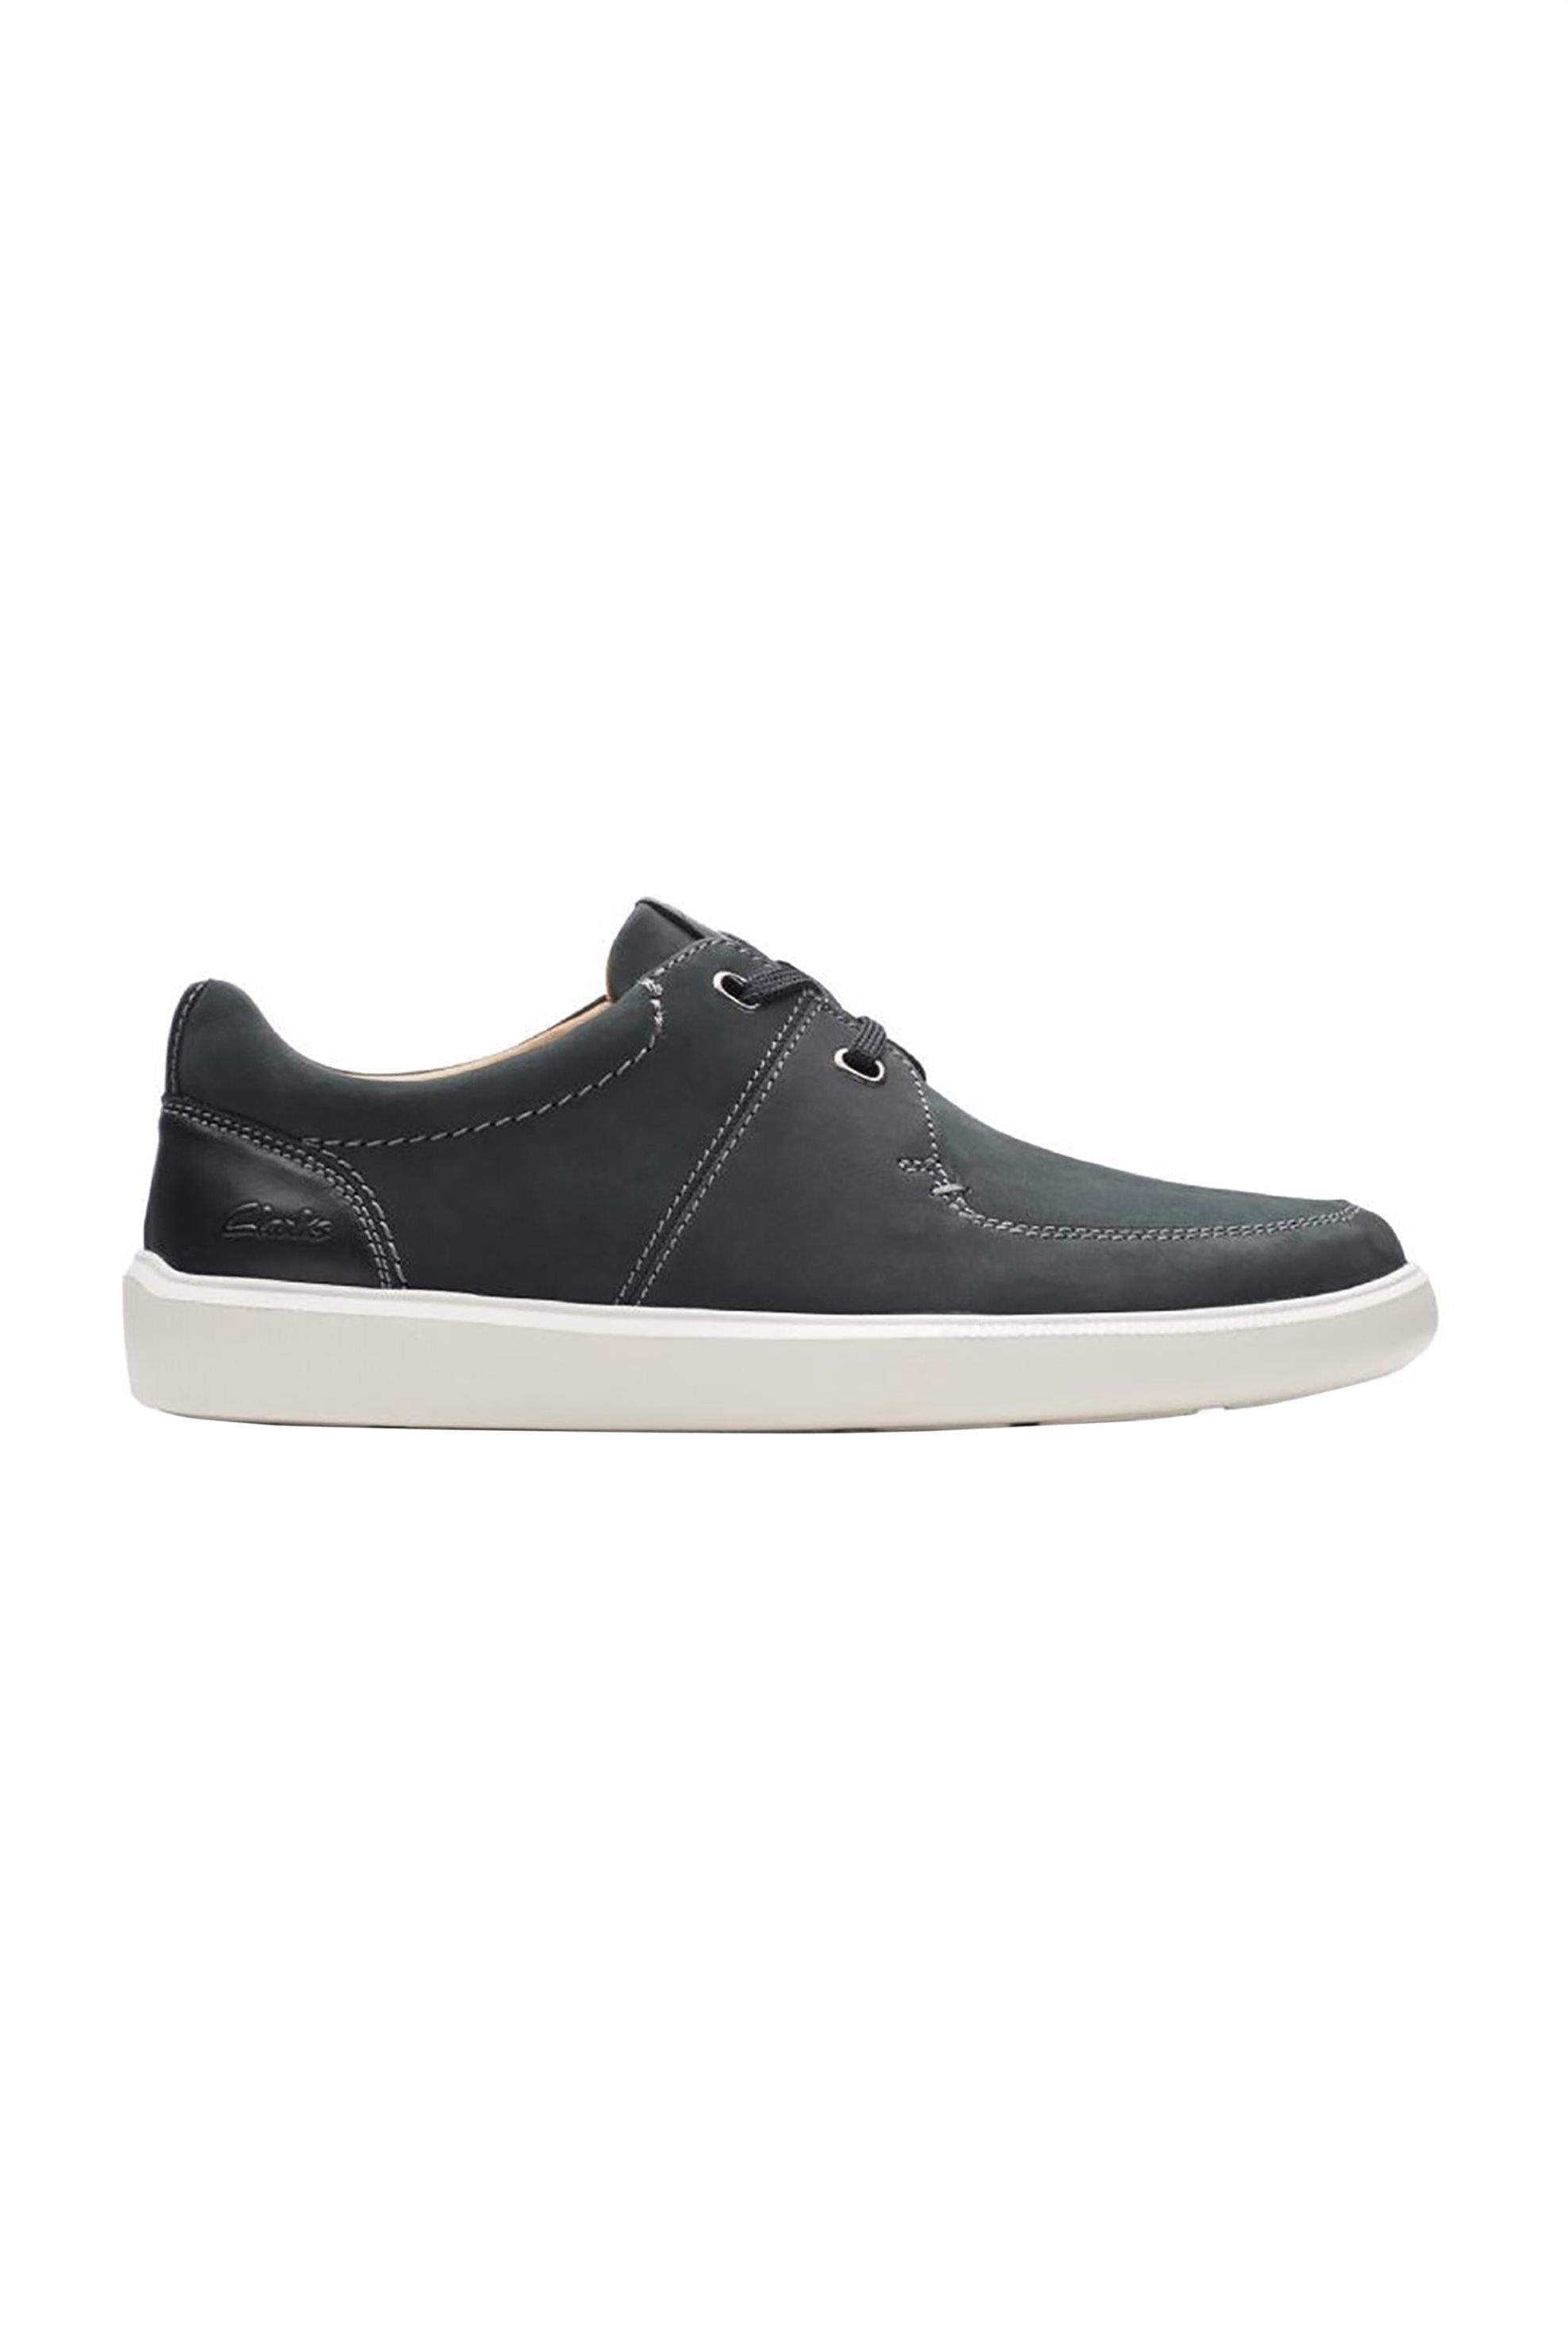 """Clarks ανδρικά δερμάτινα sneakers με κορδόνια """"Cambro Lace"""" – 26158247 – Μαύρο"""